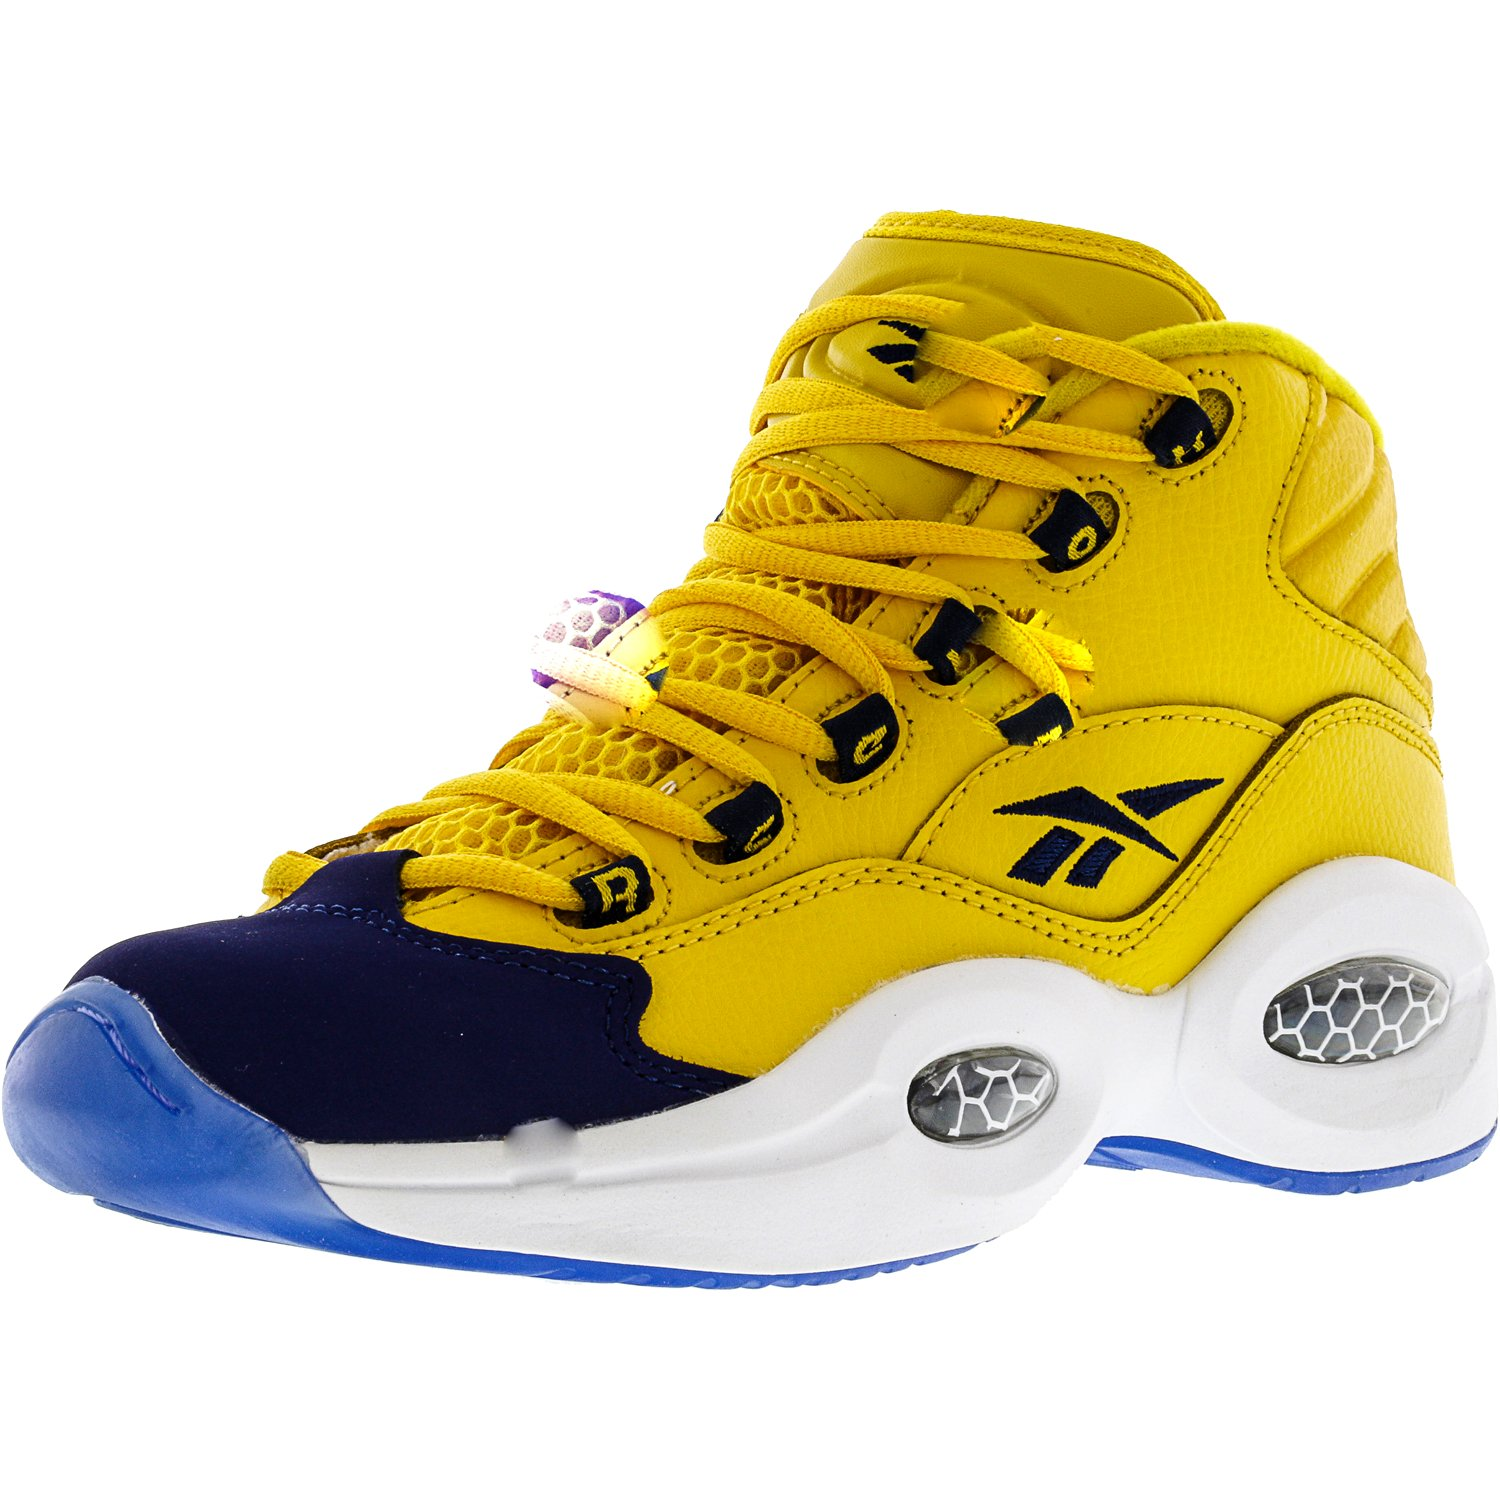 775cec70525 Reebok - Reebok Boy s Question Mid White   Pearlized Red High-Top  Basketball Shoe - 4M - Walmart.com